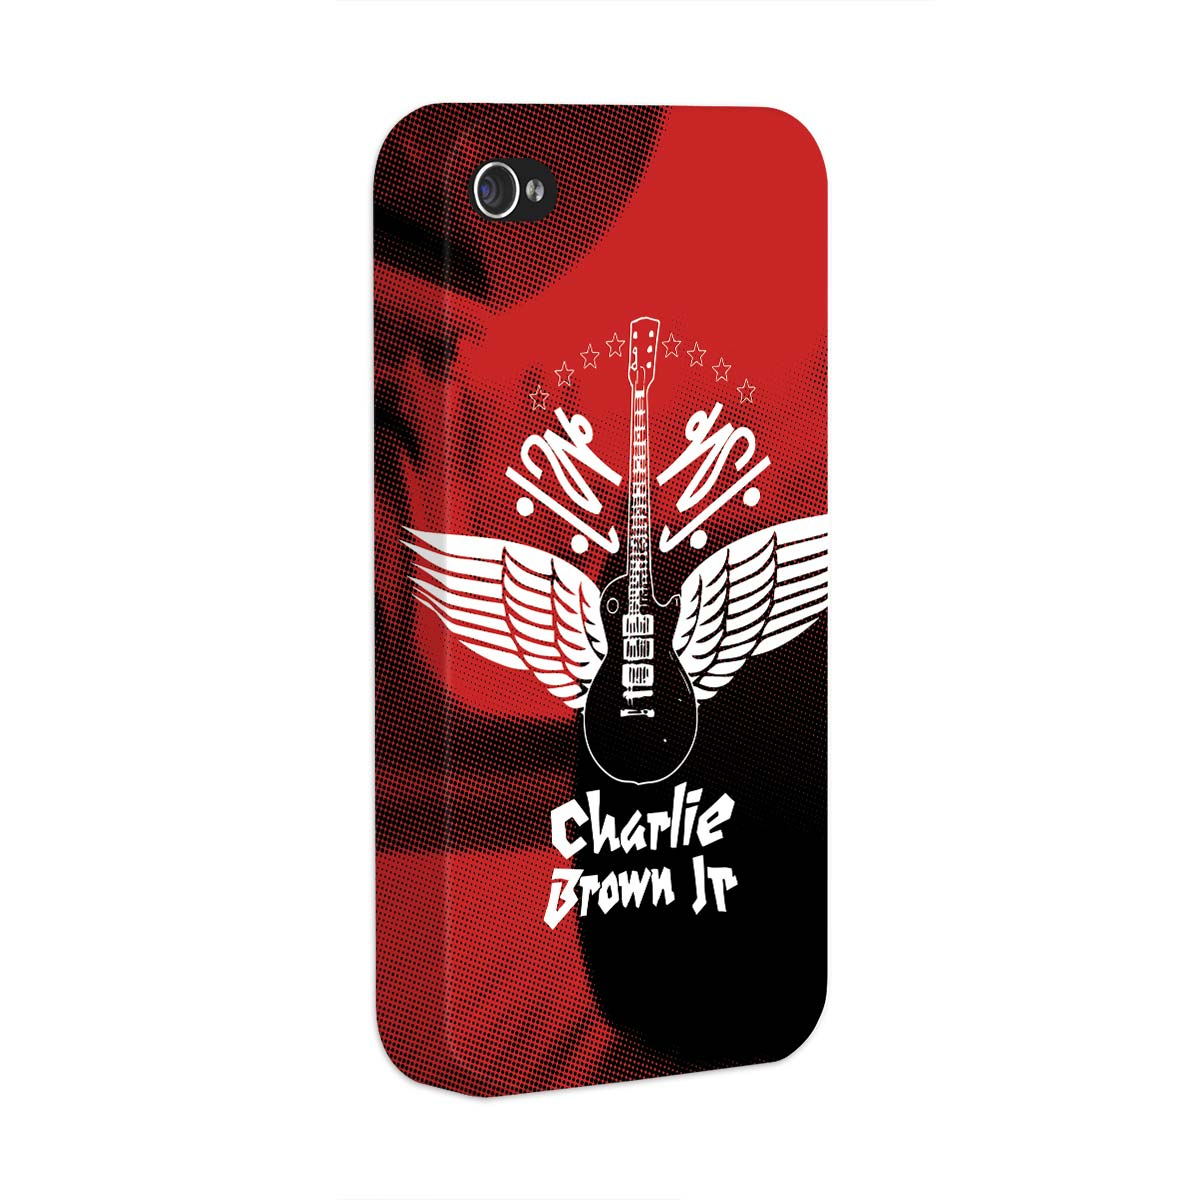 Capa para iPhone 4/4S Charlie Brown Jr. Imunidade Musical